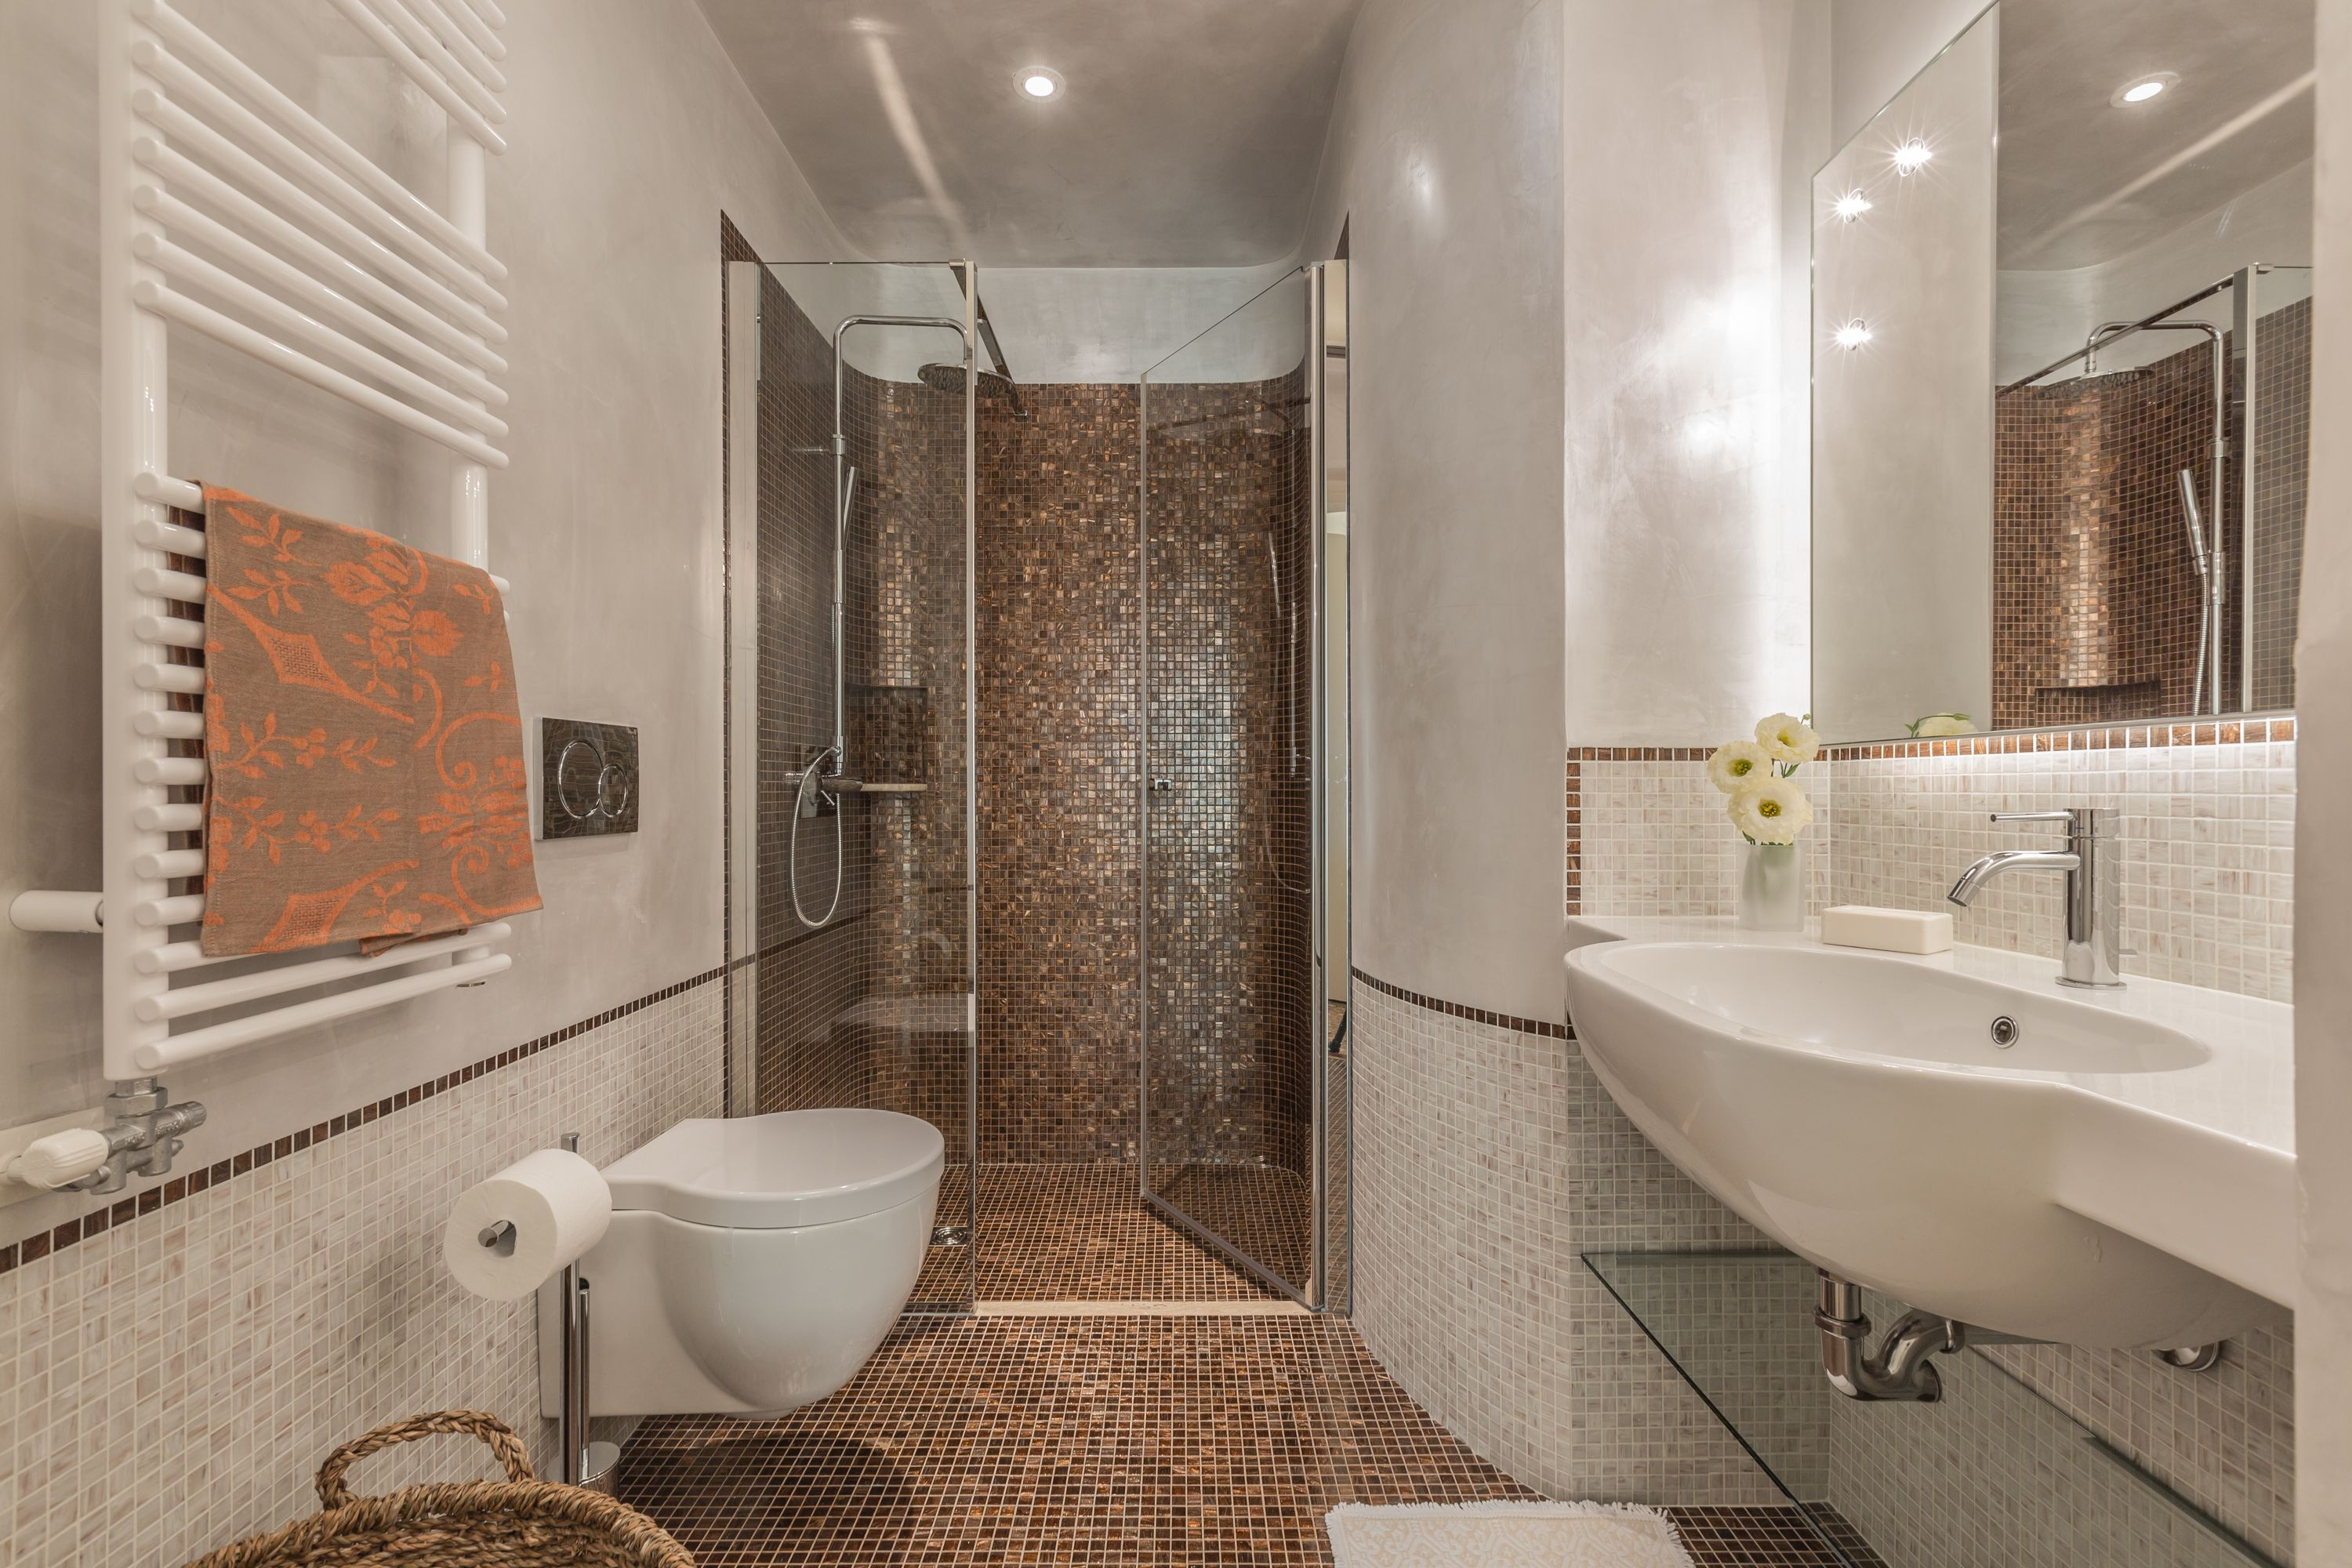 the en-suite bathroom of the main bedroom with precious mosaic tiles